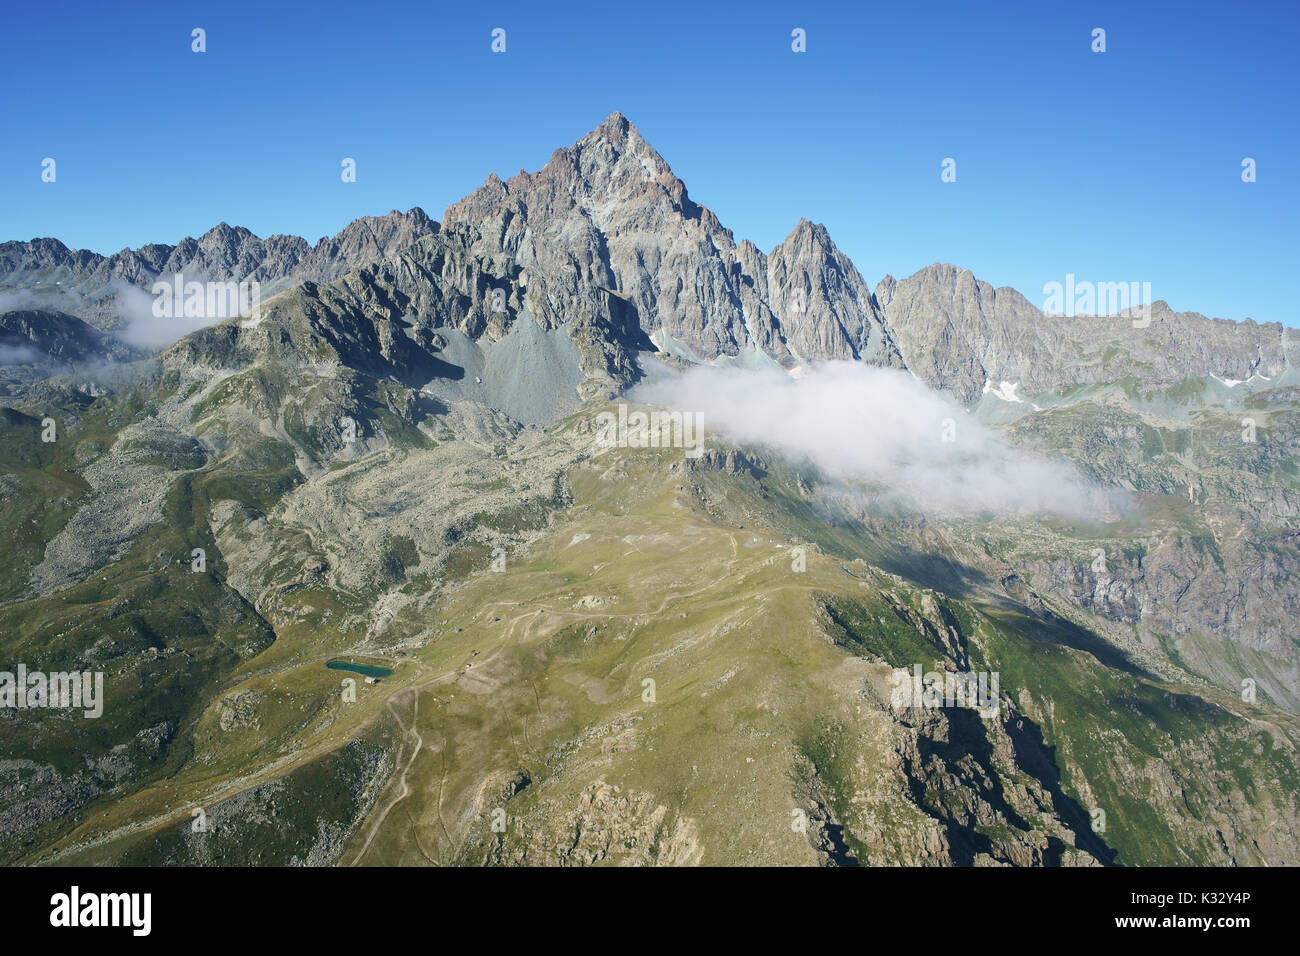 MONVISO (3841m amsl) (aerial view from the North East). Province of Cuneo, Piedmont, Italy. - Stock Image